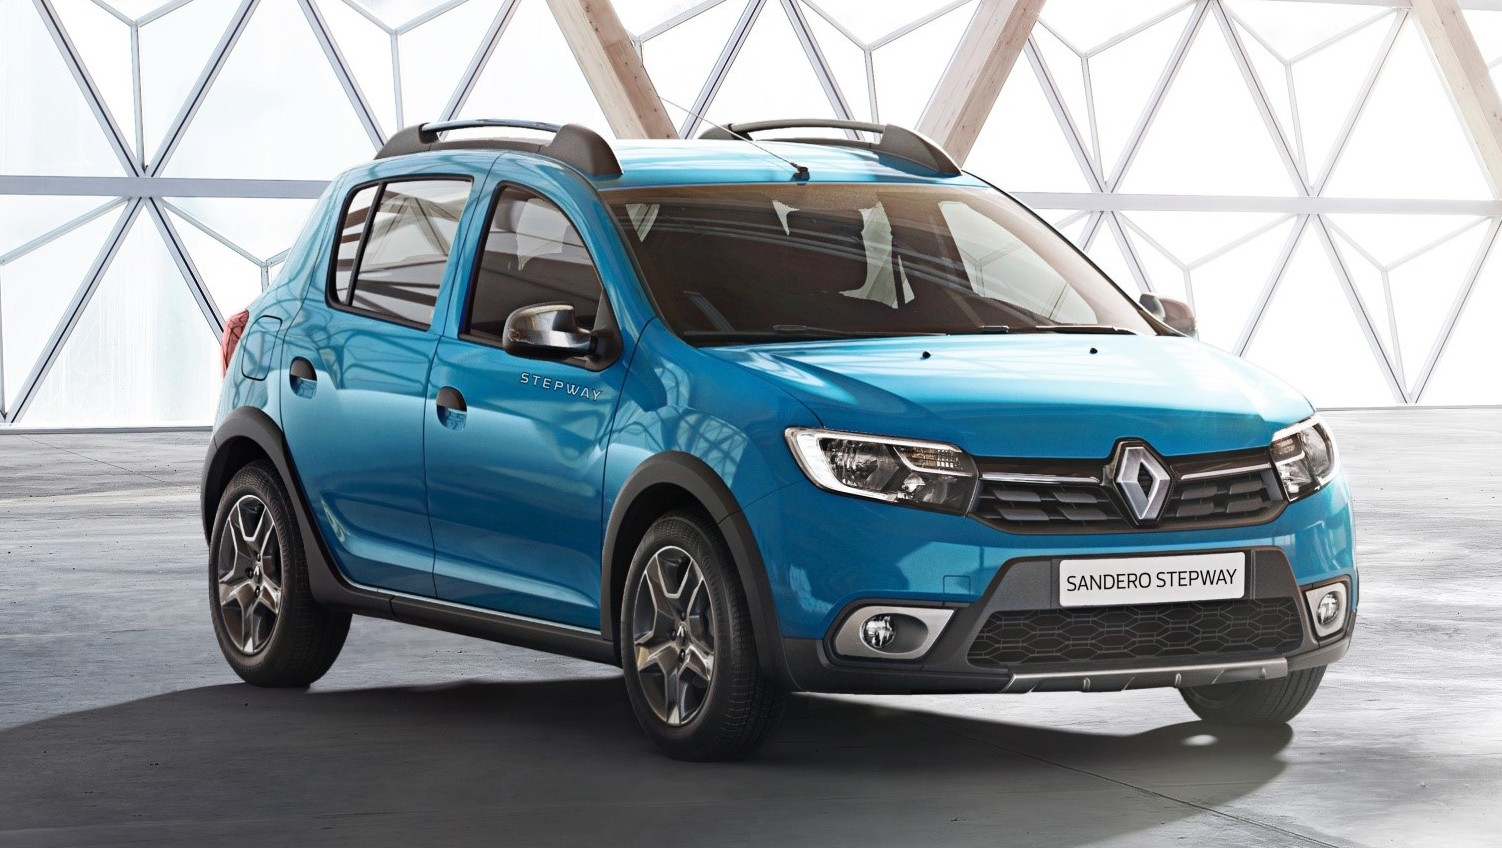 los renault logan sandero y sandero stepway se renuevan en europa autoblog uruguay autoblog. Black Bedroom Furniture Sets. Home Design Ideas